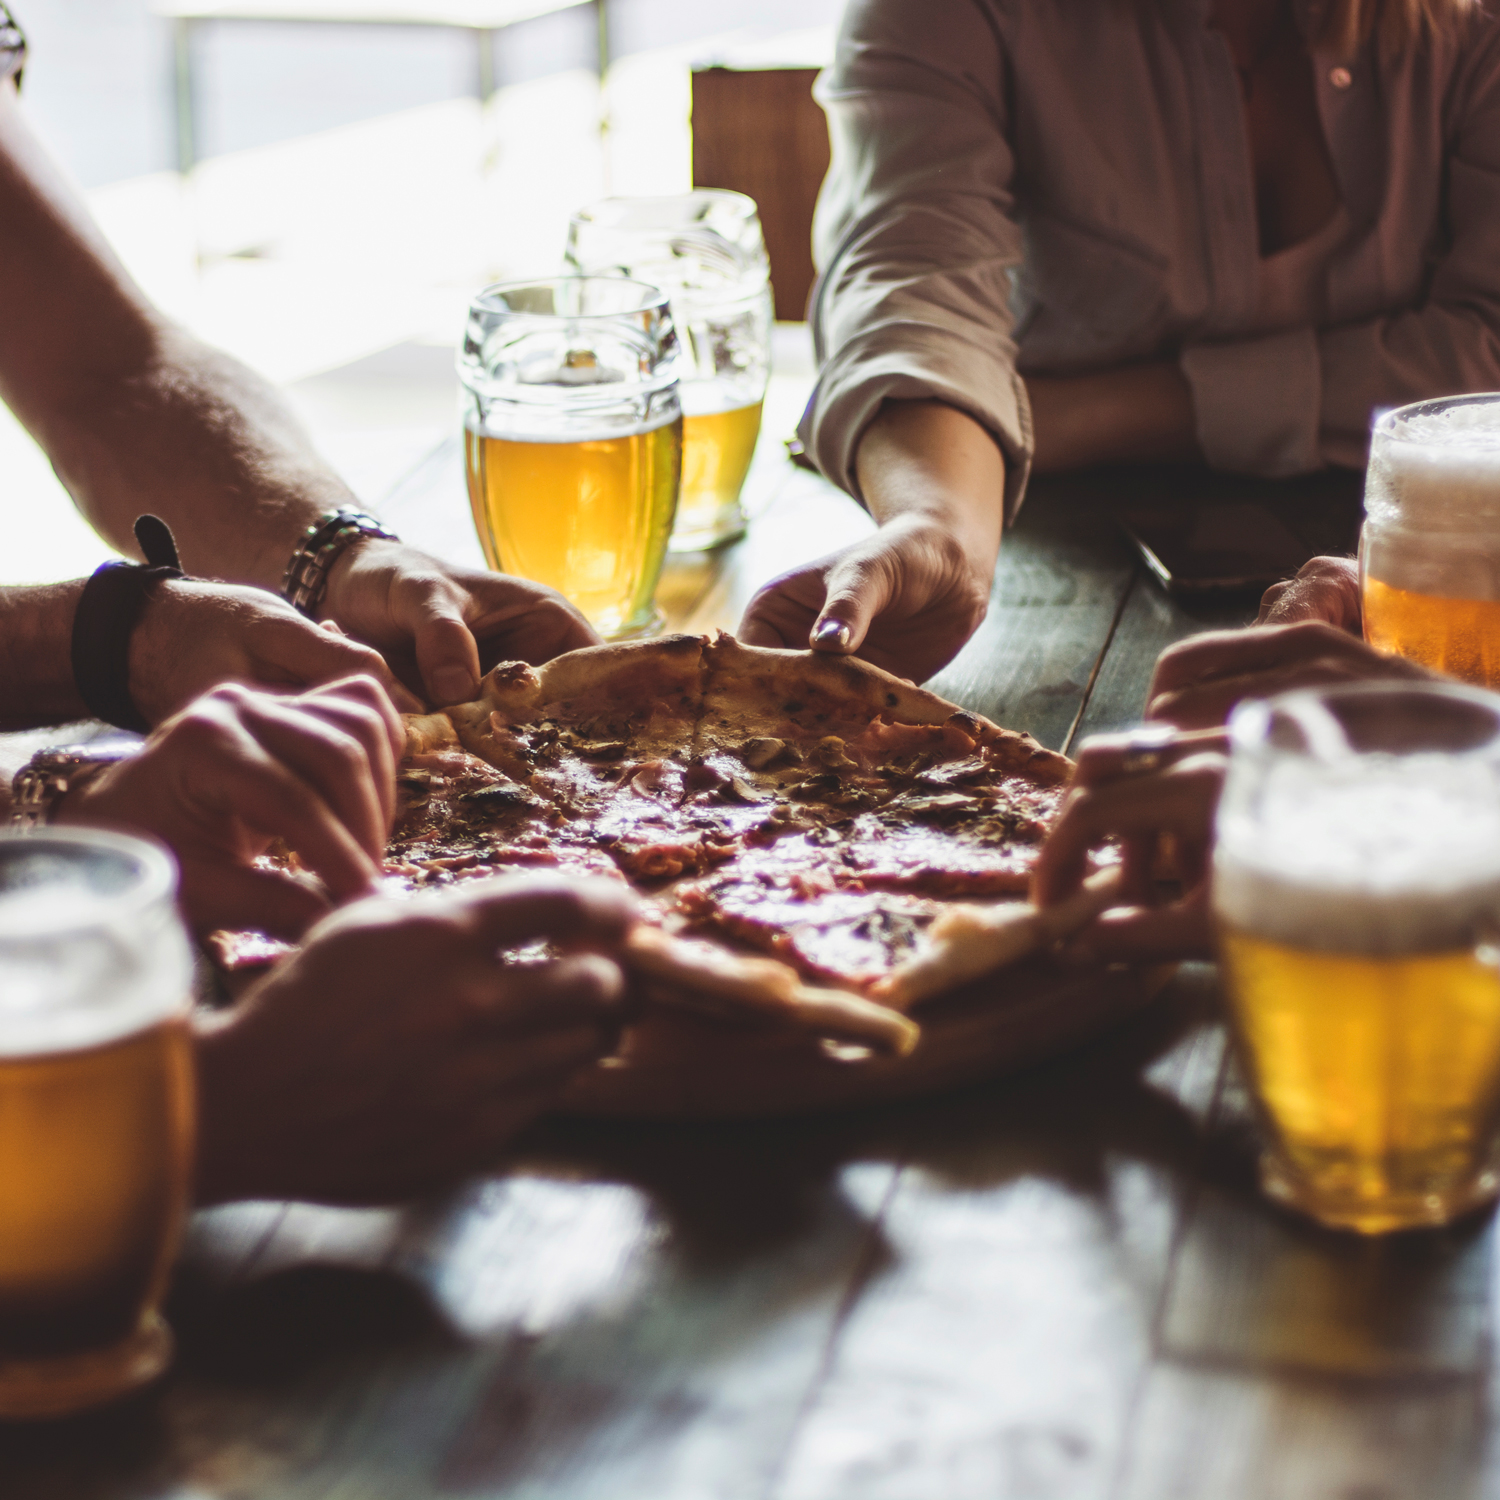 Eating in Groups Makes Pizza Better